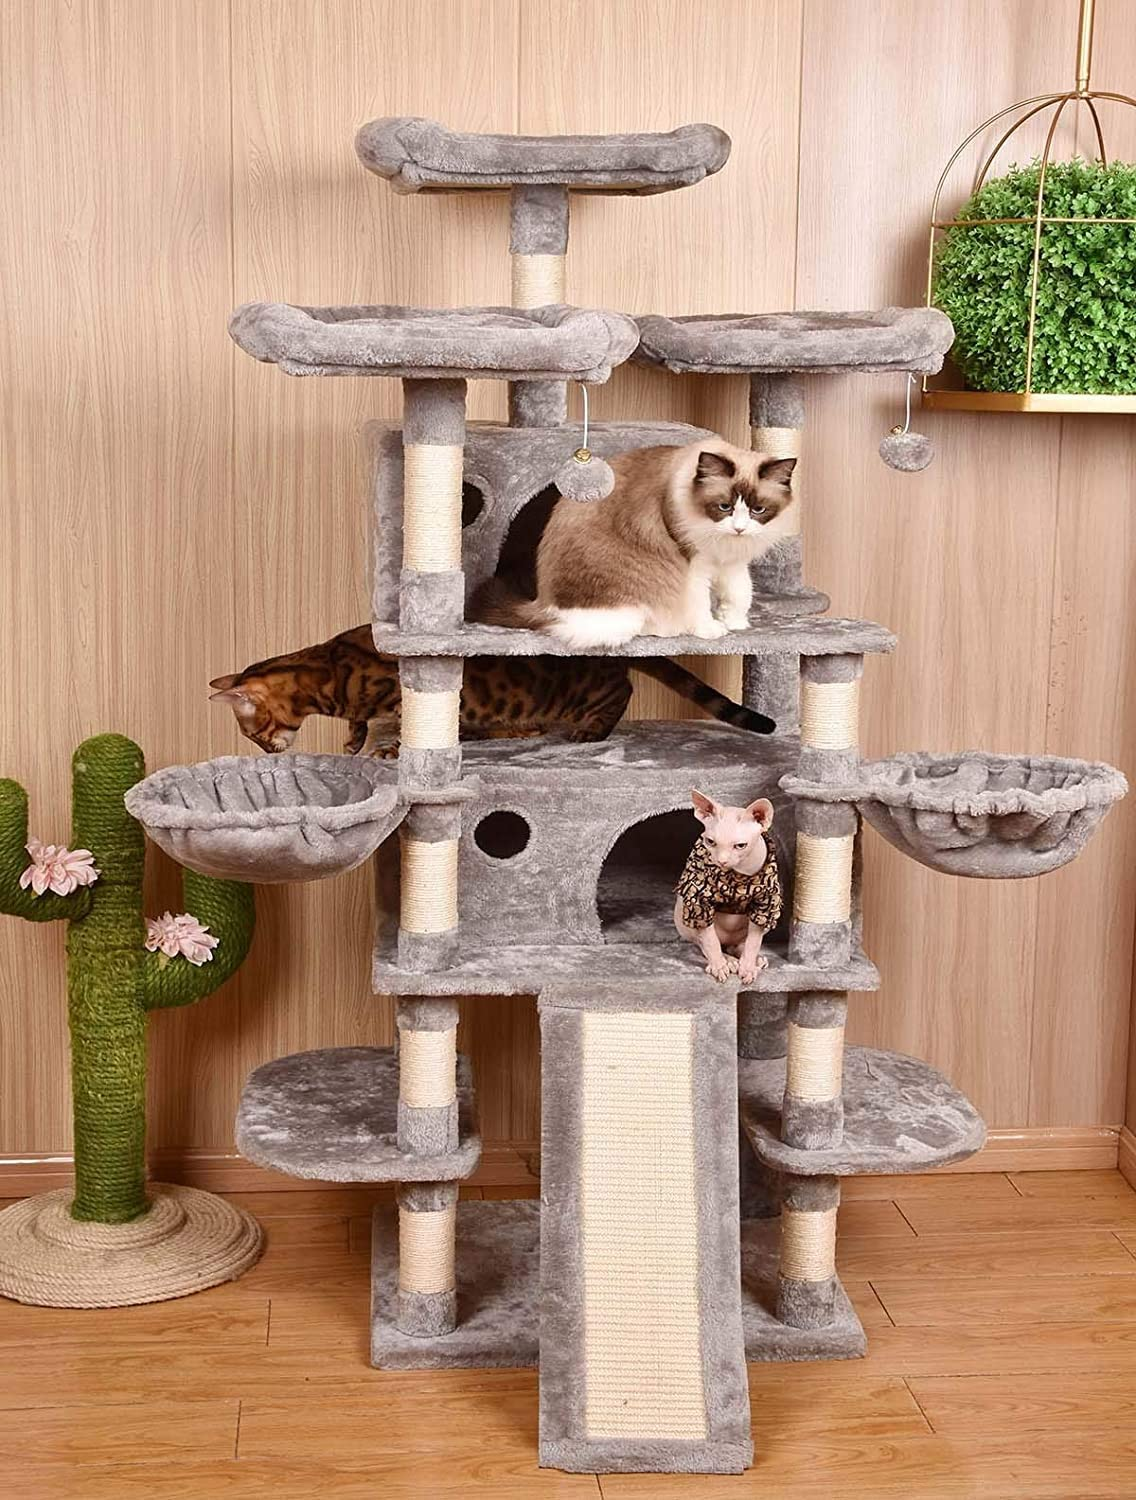 9 Best Cat Tree For Large Cats 2021